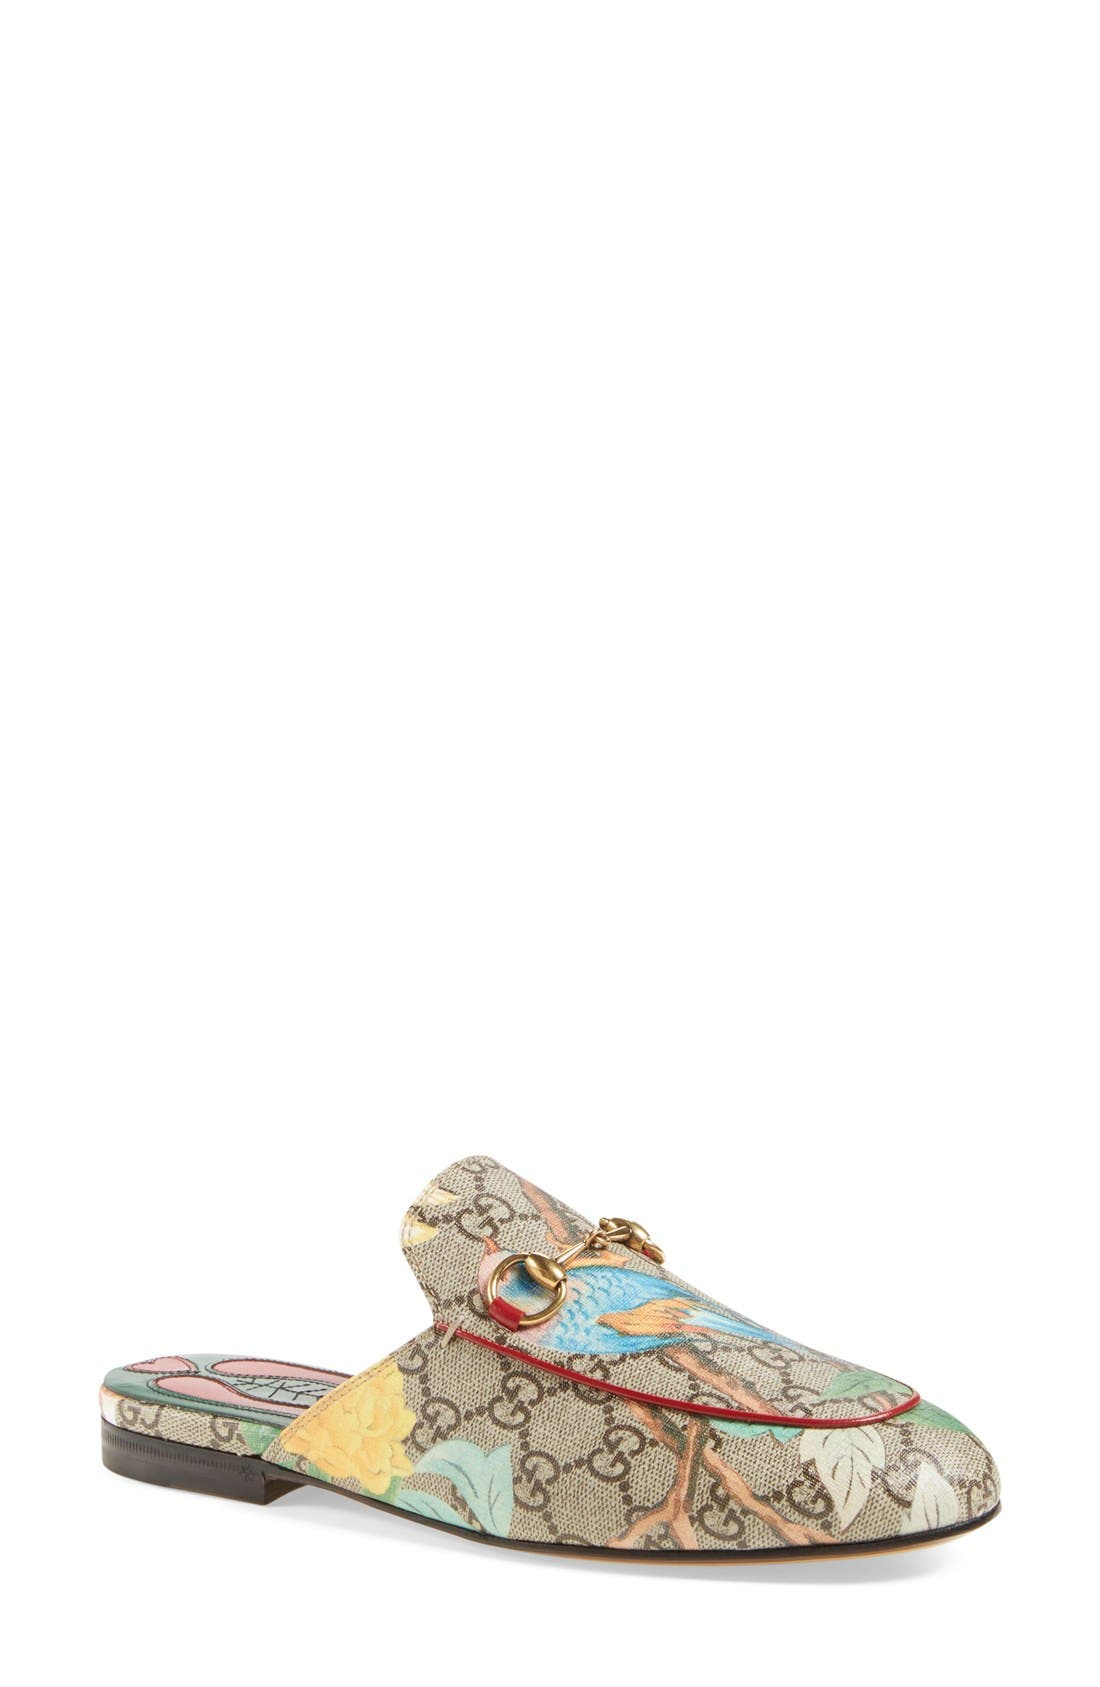 Alternate Image 1 Selected - Gucci 'Princetown' Floral Print Mule Loafer (Women)